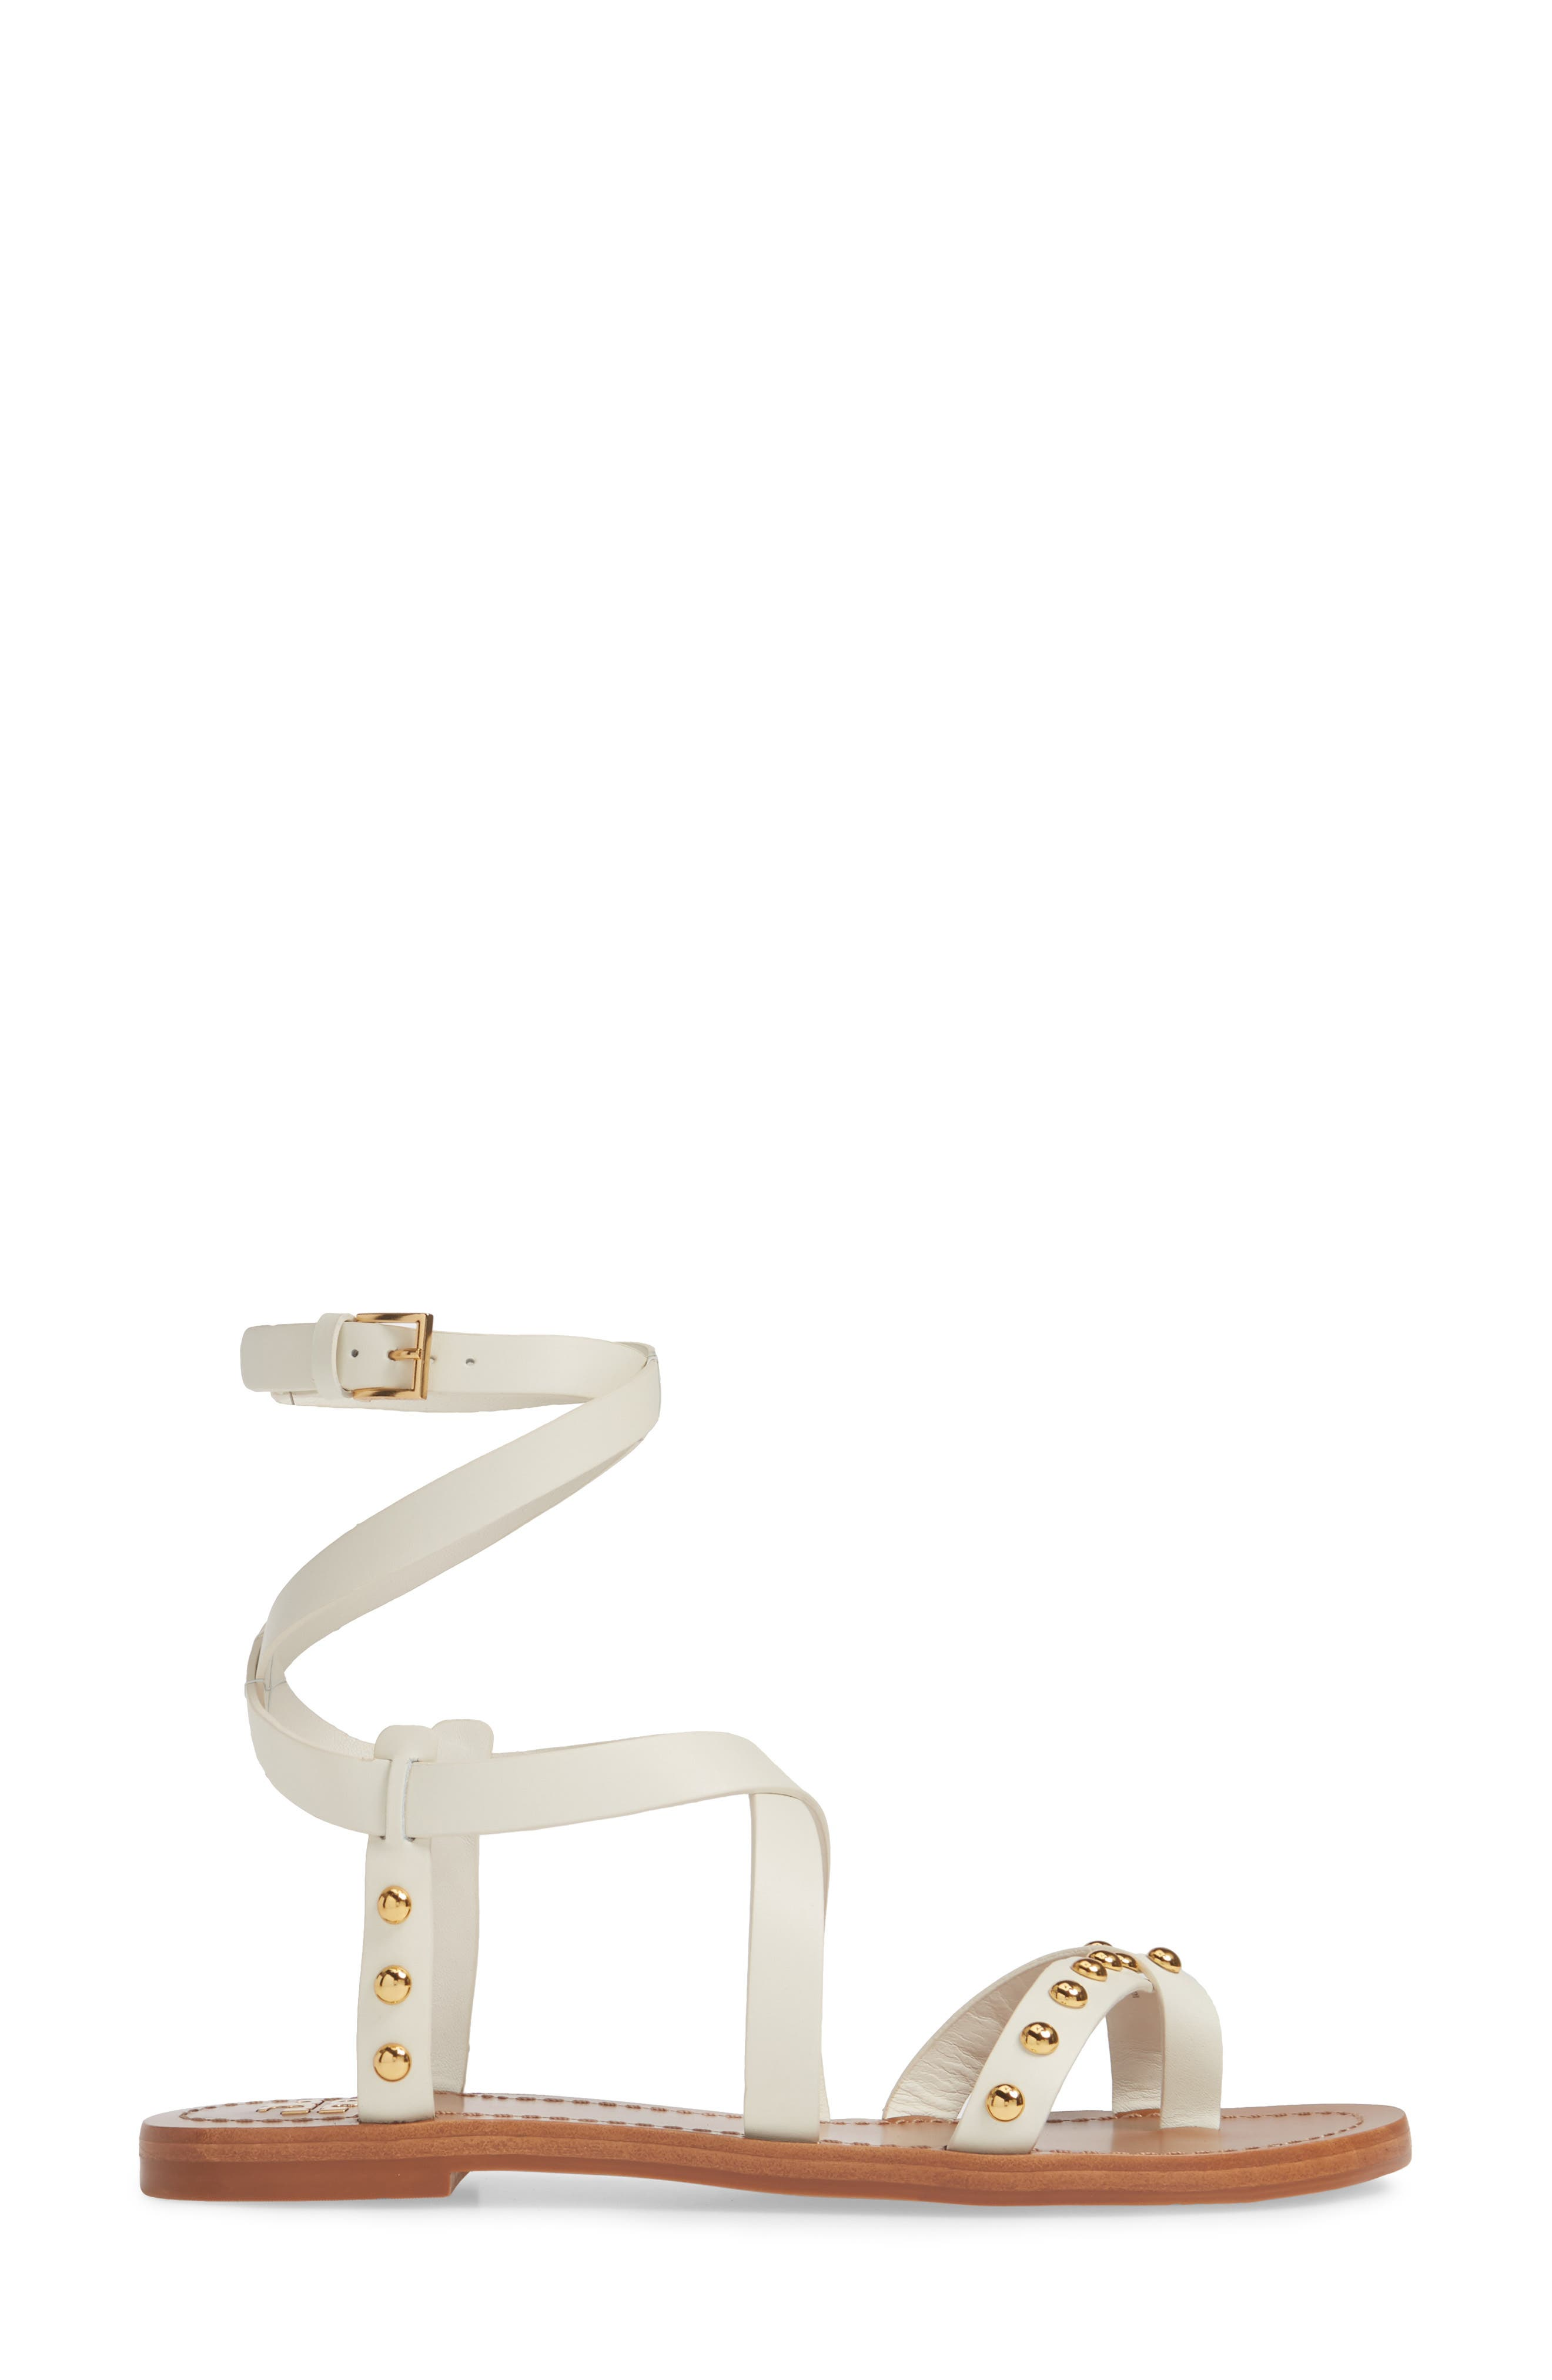 TORY BURCH, Ravello Studded Cage Sandal, Alternate thumbnail 3, color, PERFECT IVORY